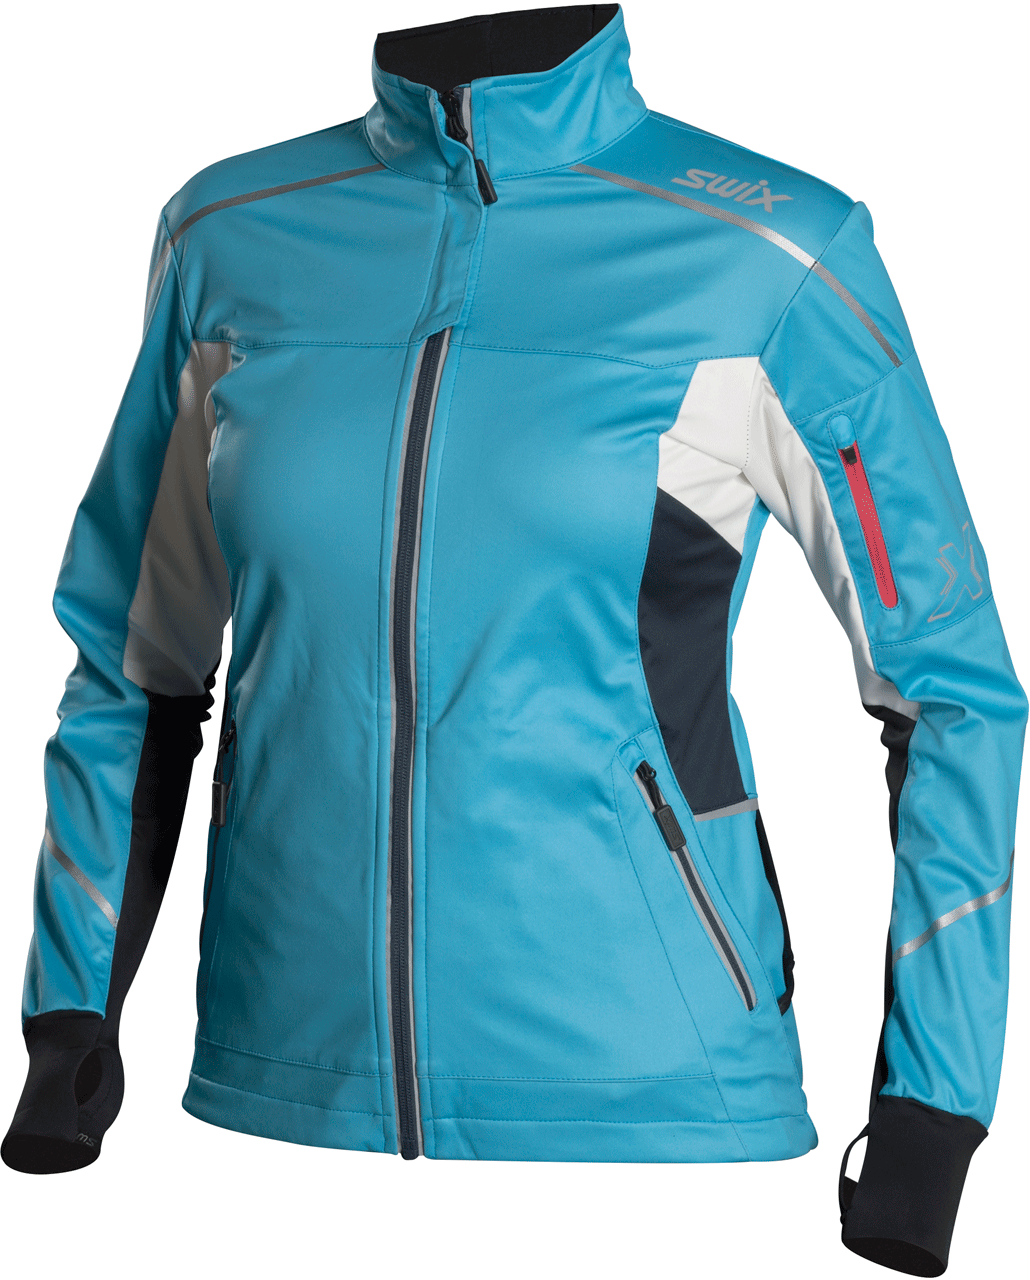 5ac0fb3608 Swix Women s Delda Light Jacket - Gear West Ski and Run